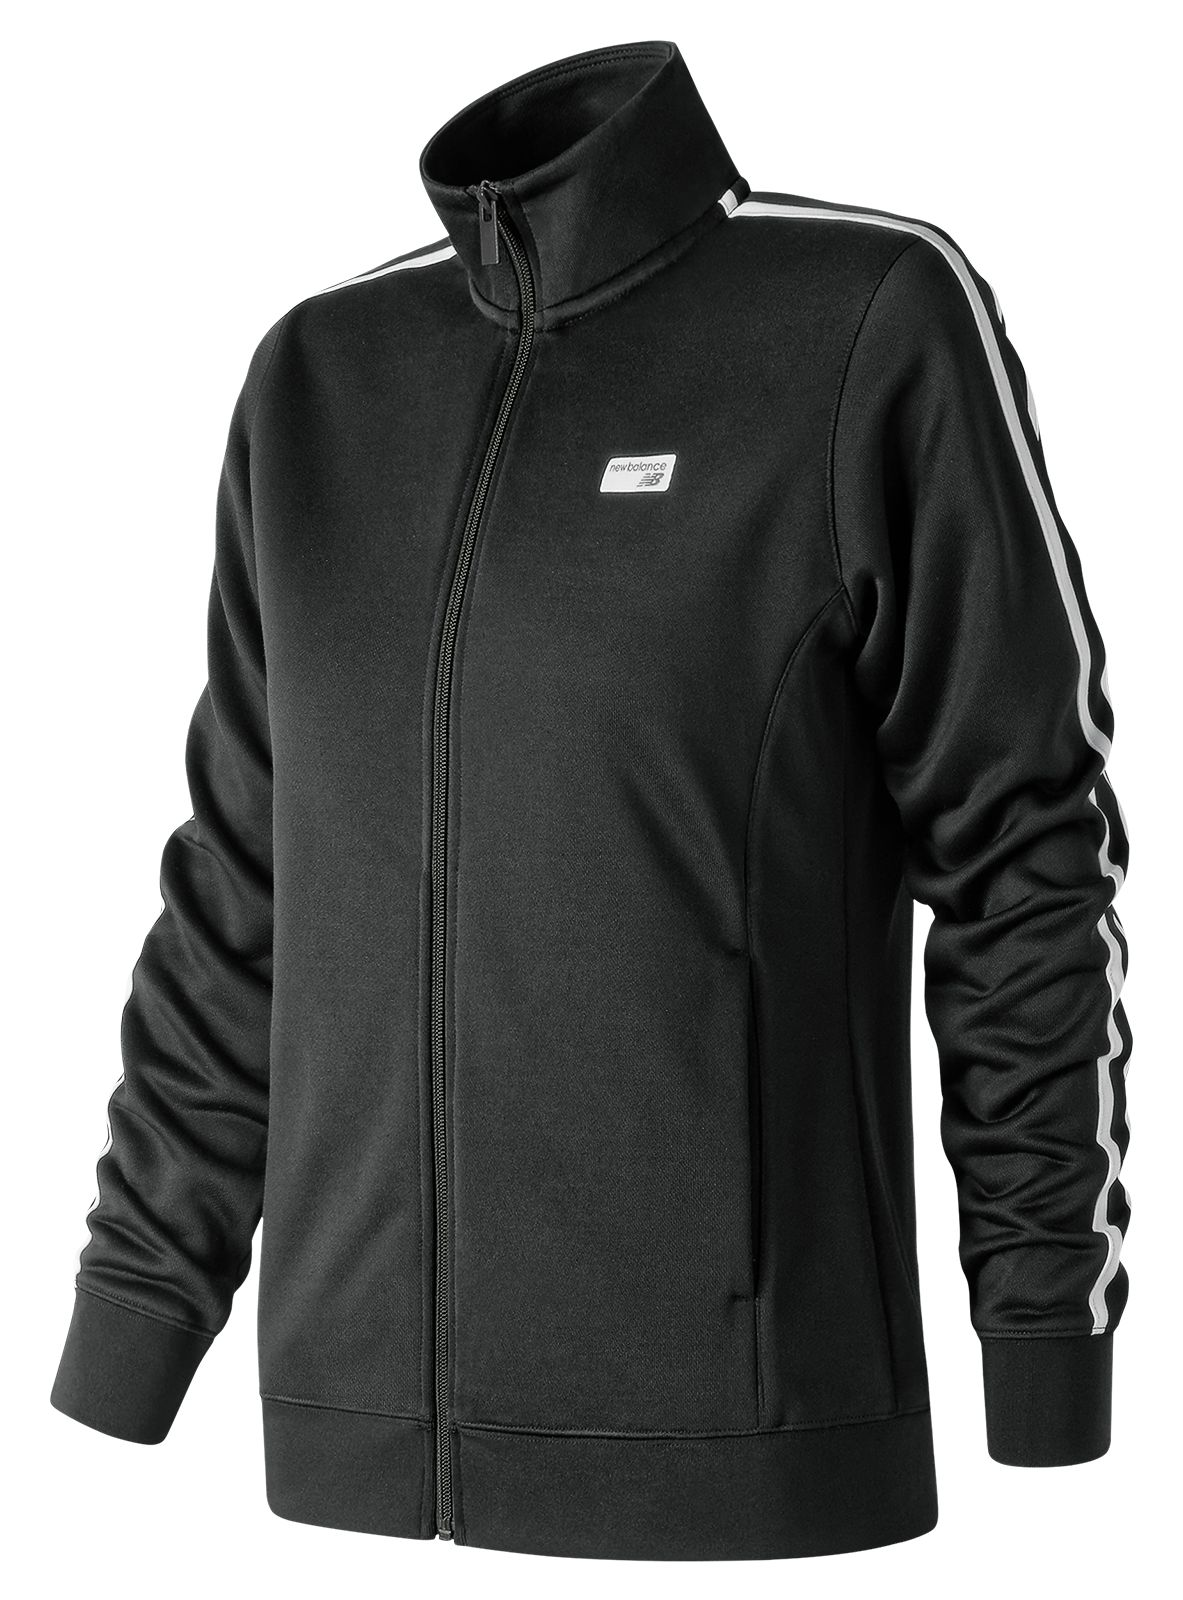 *Markdown*  Women's NB Athletics Track Jacket